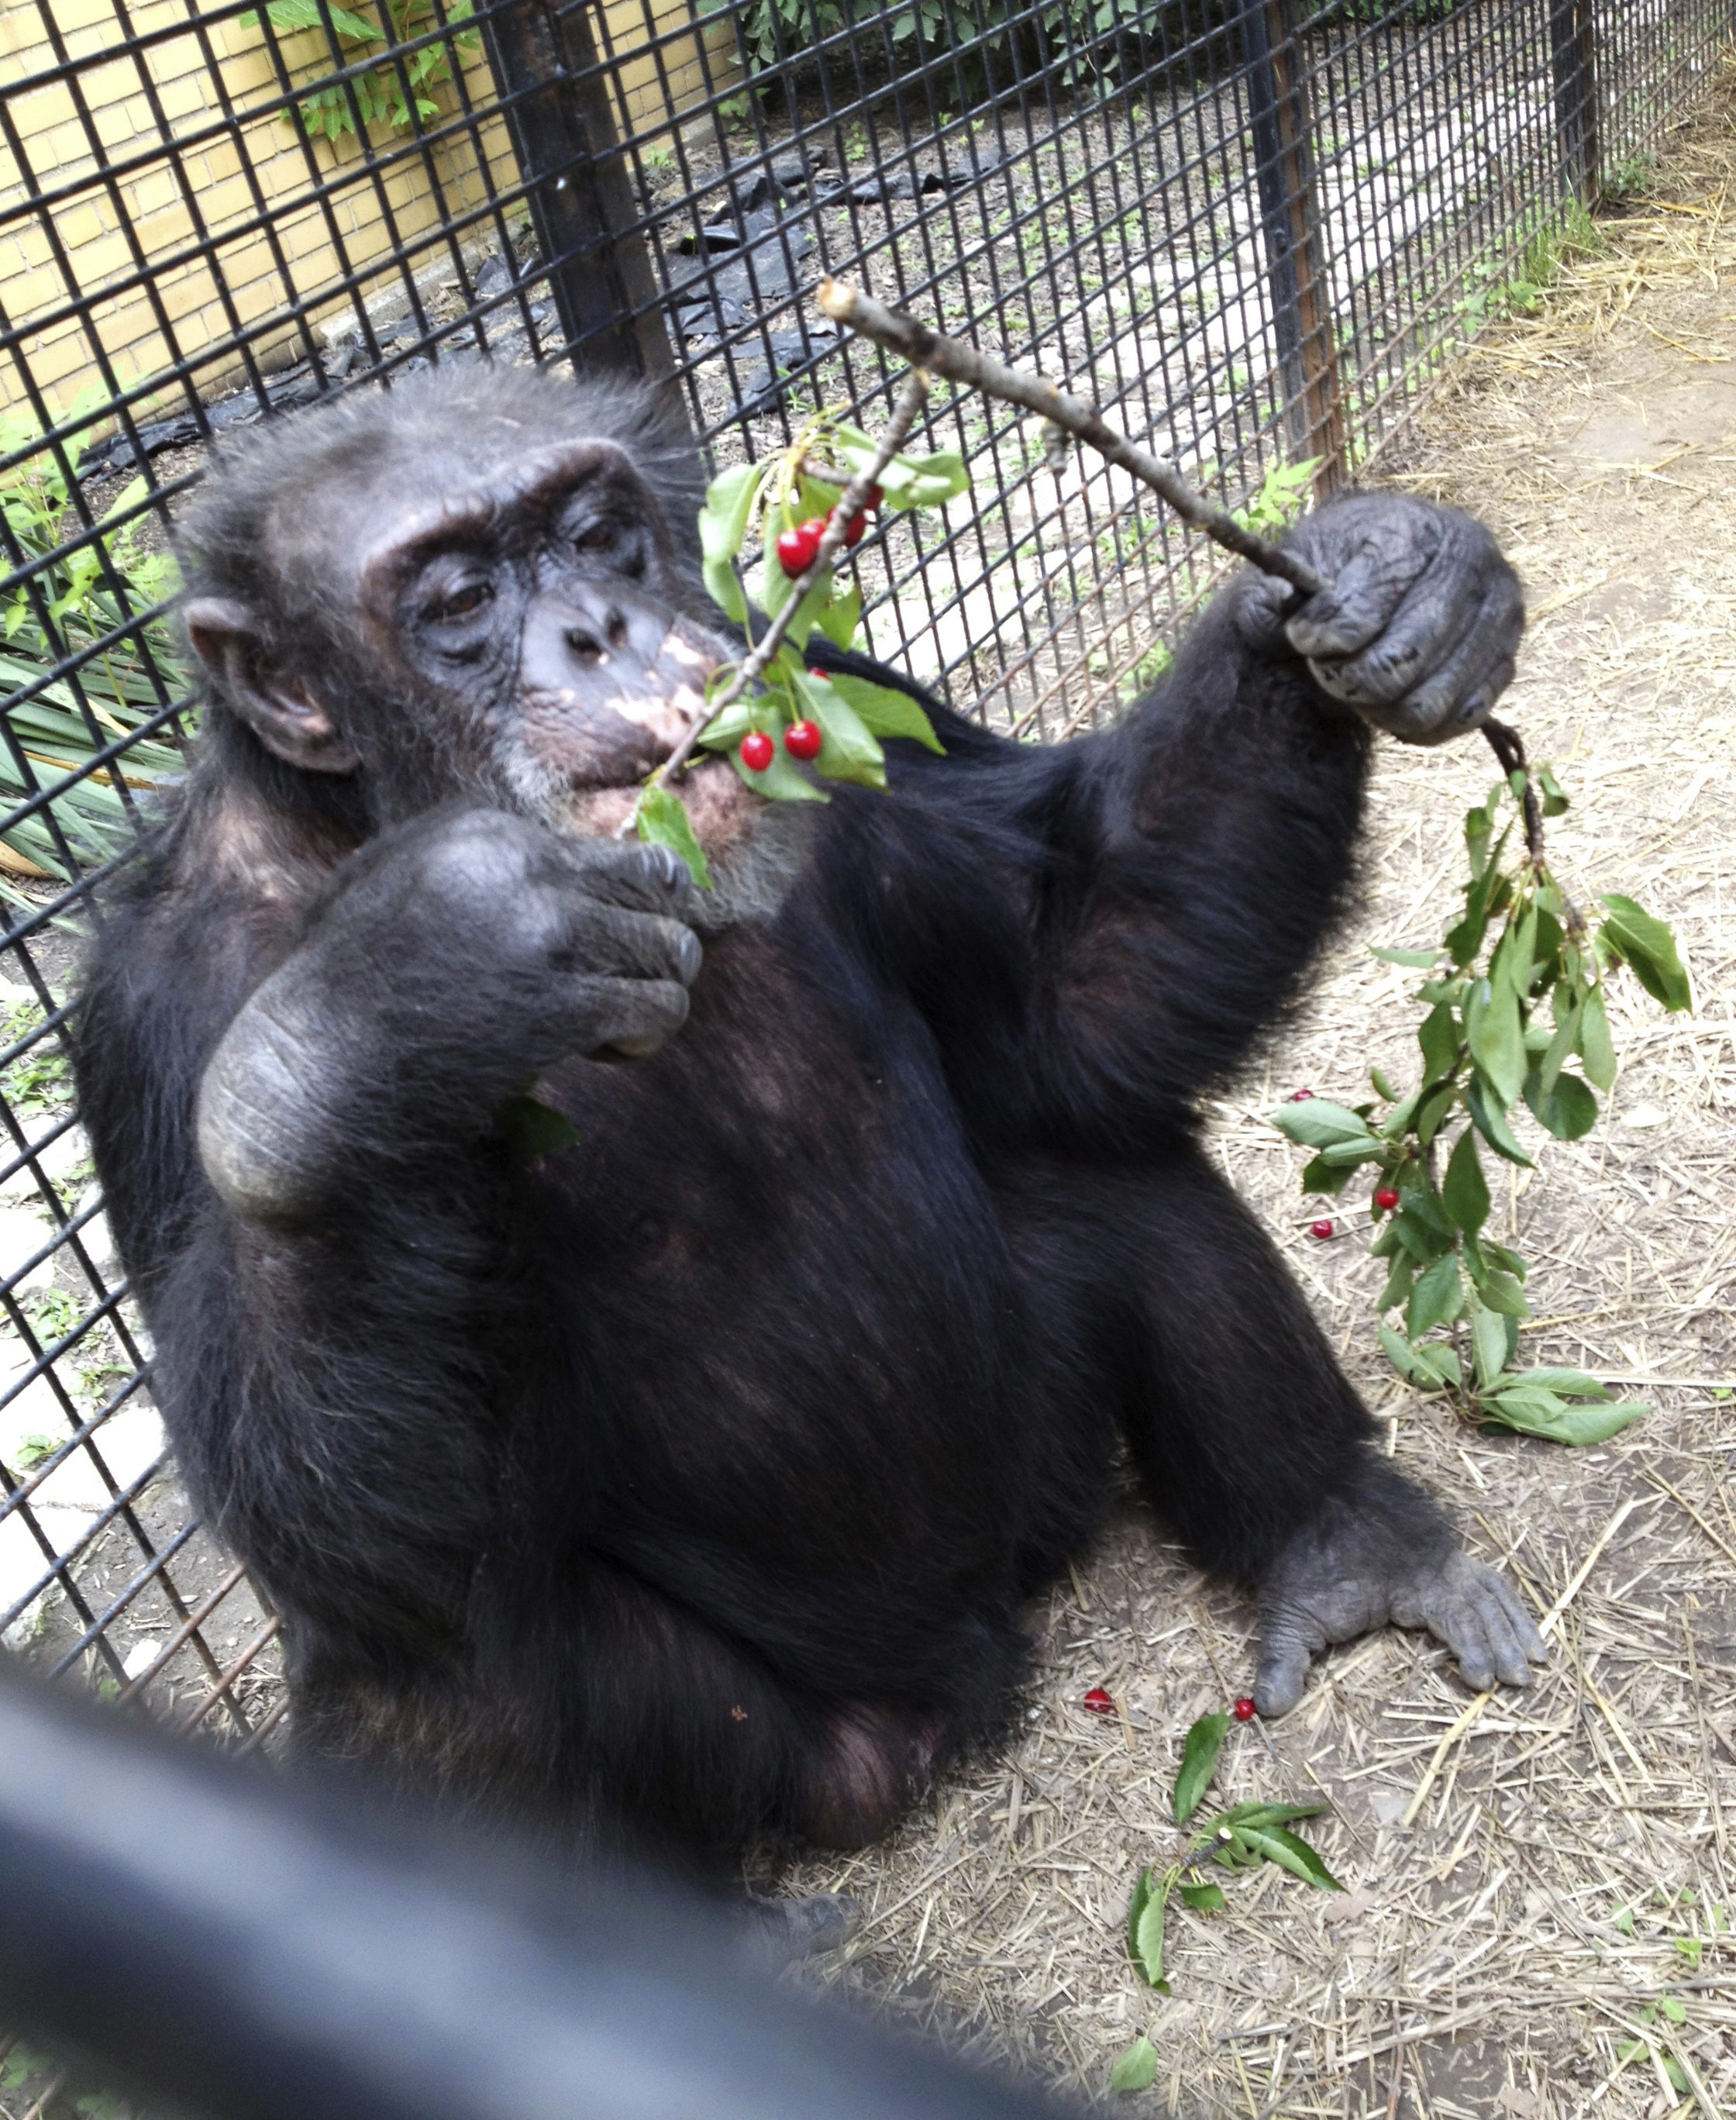 Freedom of the Apes: US Attorney Seeks Legal Rights for Chimpanzees